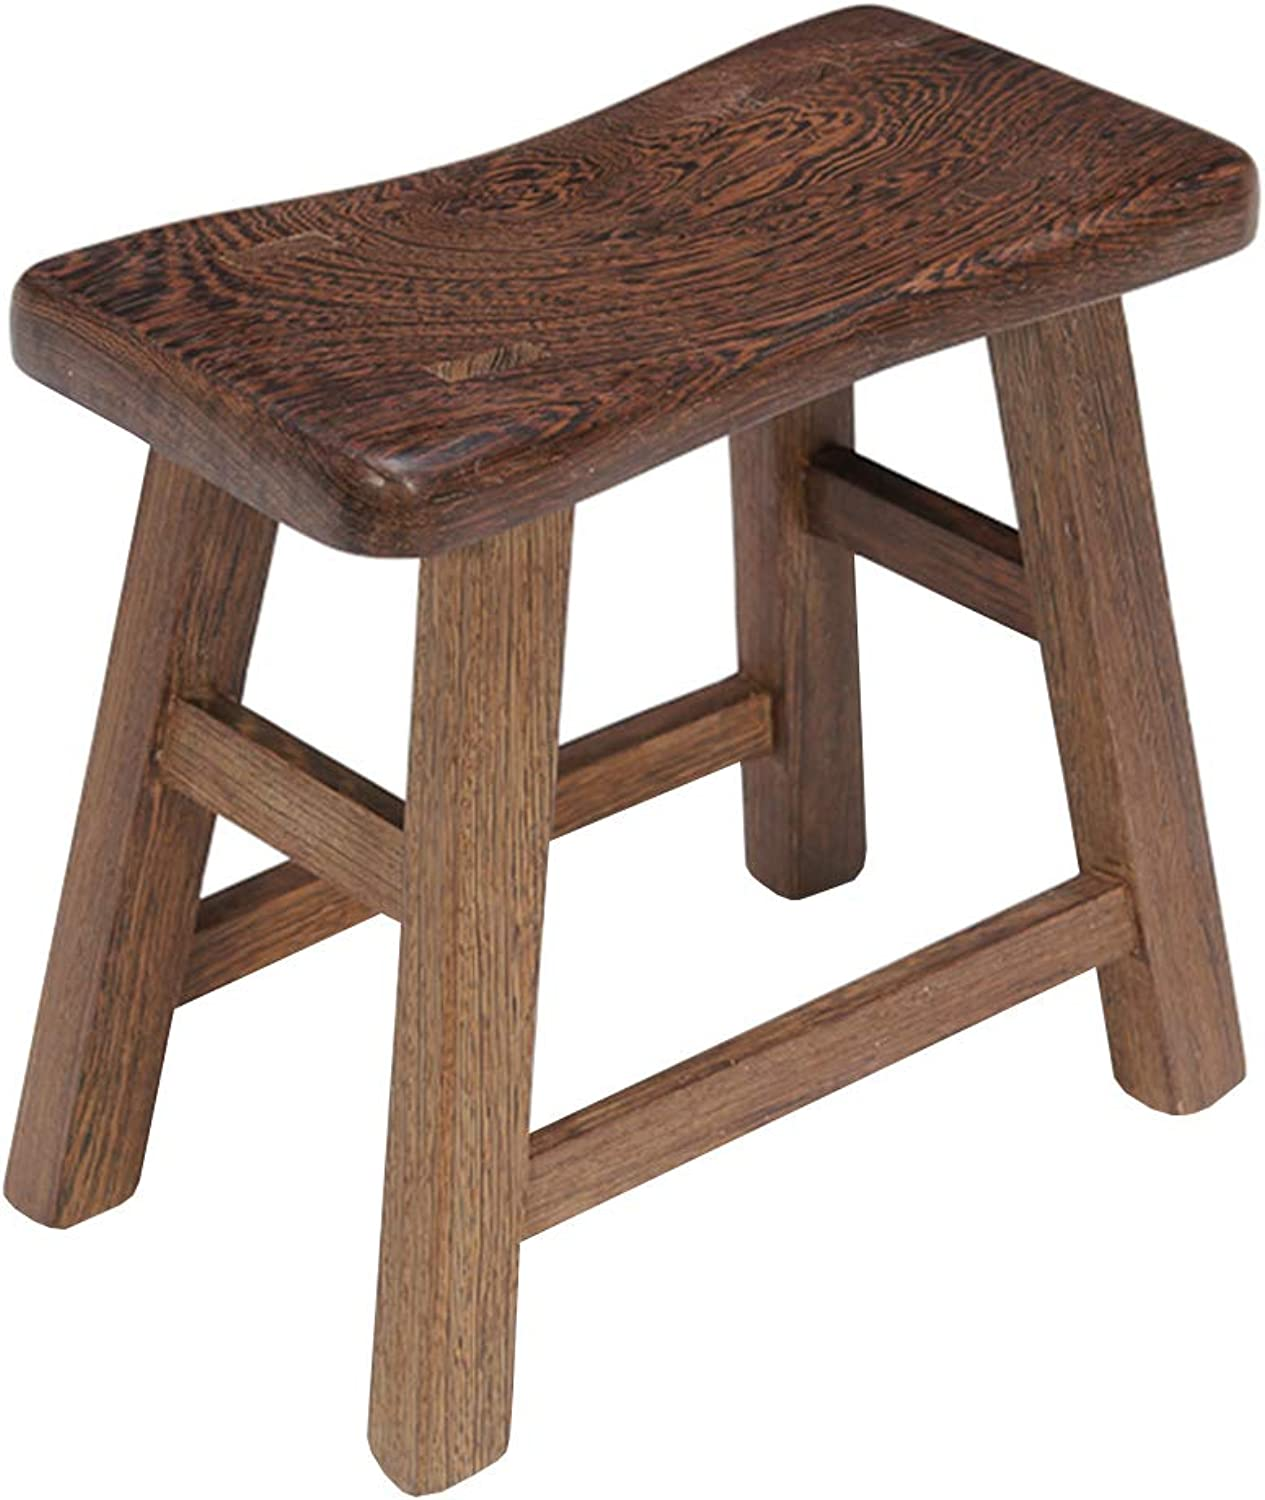 Stool Traditional Home Small Bench Multi-Purpose shoes Bench Home Rectangular Solid Wood Footstool Various Sizes WEIYV (color   Wood-color, Size   29  15  21cm)